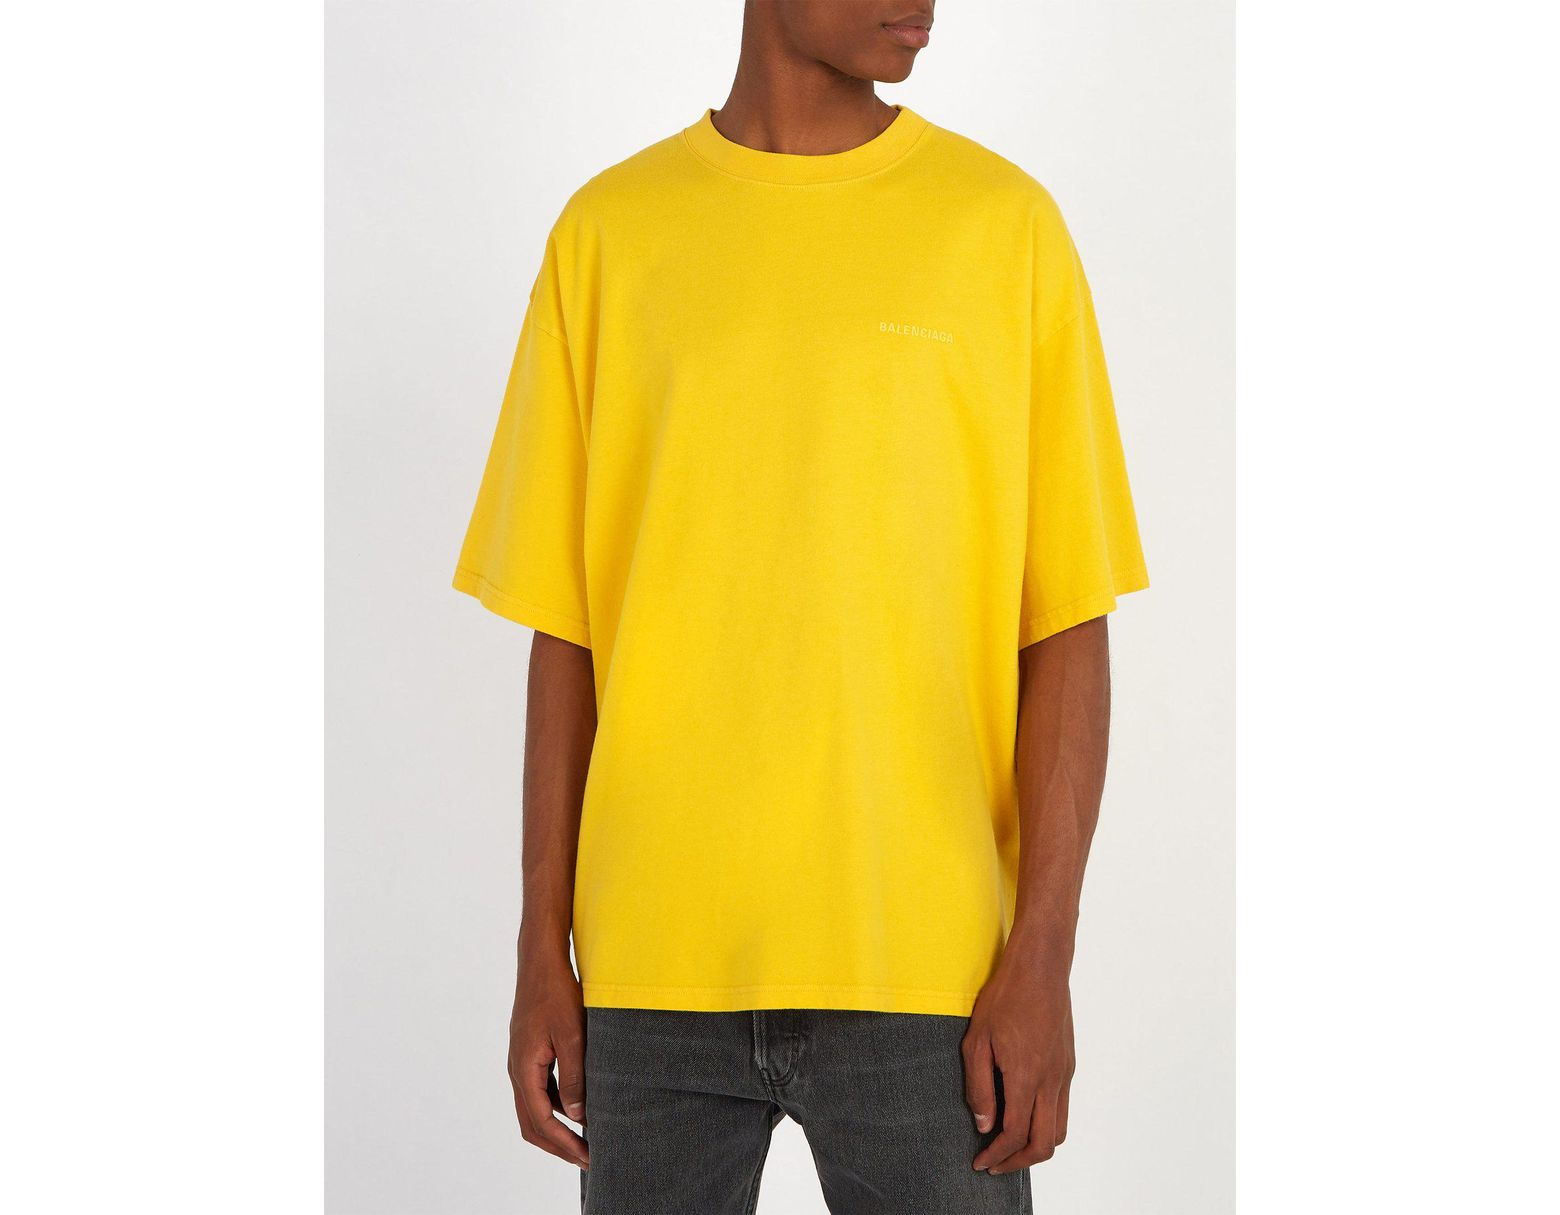 2f464d44 Balenciaga Self Help Print Cotton T Shirt in Yellow for Men - Lyst